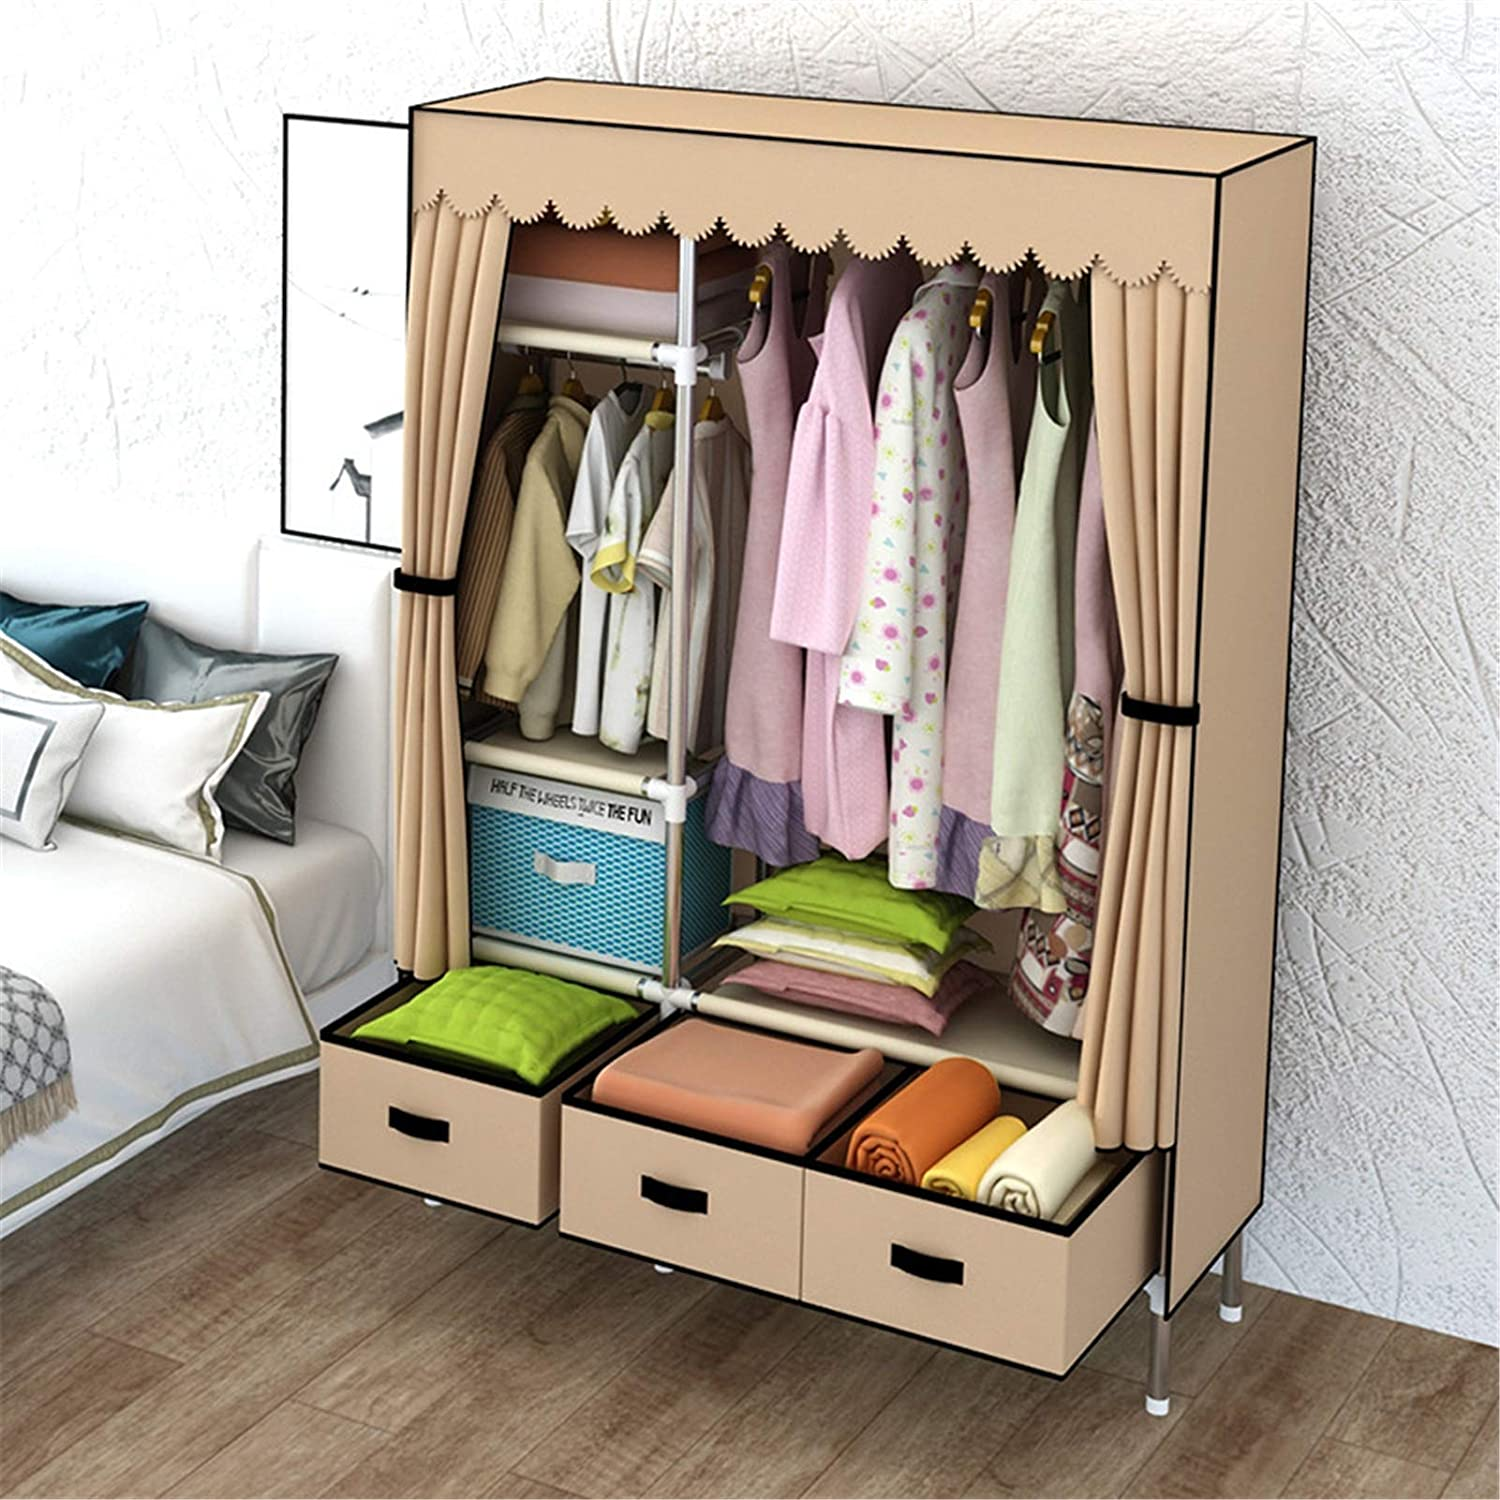 N/Z Home Equipment Canvas Wardrobe Portable Clothes Closet Wardrobe with Hanging Rack Non-Woven Fabric Storage Organizer with Three Drawer Boxes (Color : Khaki Size : 105x168x45cm)